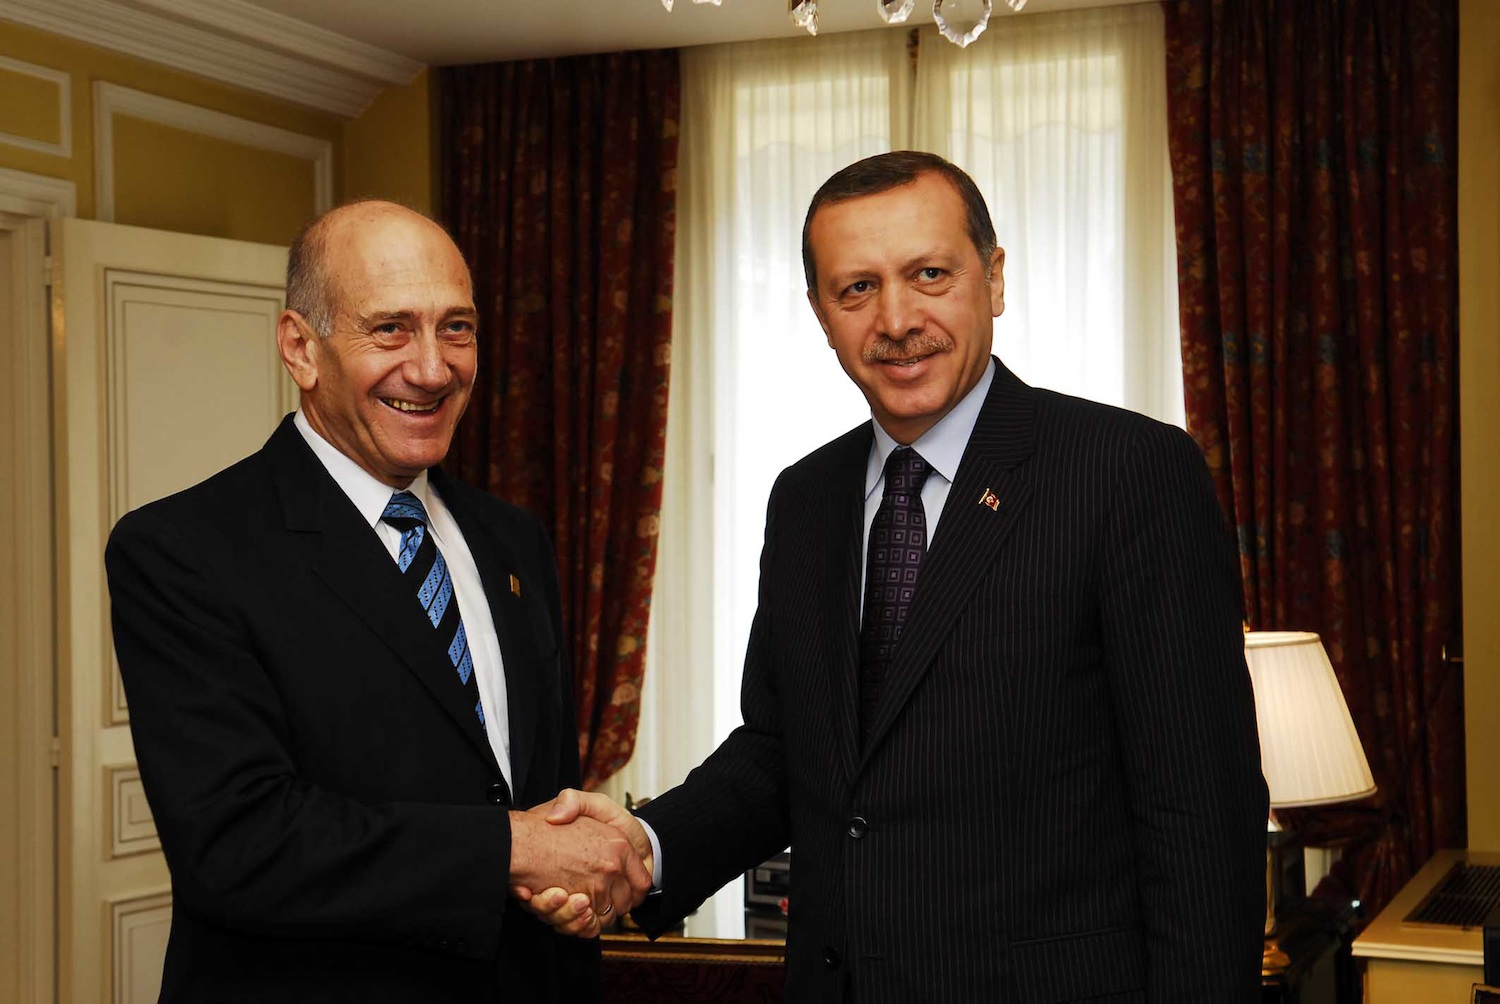 Click photo to download. Caption:Israeli Prime Minister Ehud Olmert meets with Turkish Prime Minister Recep Tayyip Erdogan at the Elysee Palace in Paris during a summit aimed at breathing new life into the existing Euro-Mediterranean region on July 13, 2008. Turkey-Israel relations have been strained since the 2010 Gaza flotilla incident, for which Israeli Prime Minister Benjamin Netanyahu apologized to Erdogan in a telephone call last Friday. Credit: Avi Ohayon/GPO/Flash90.